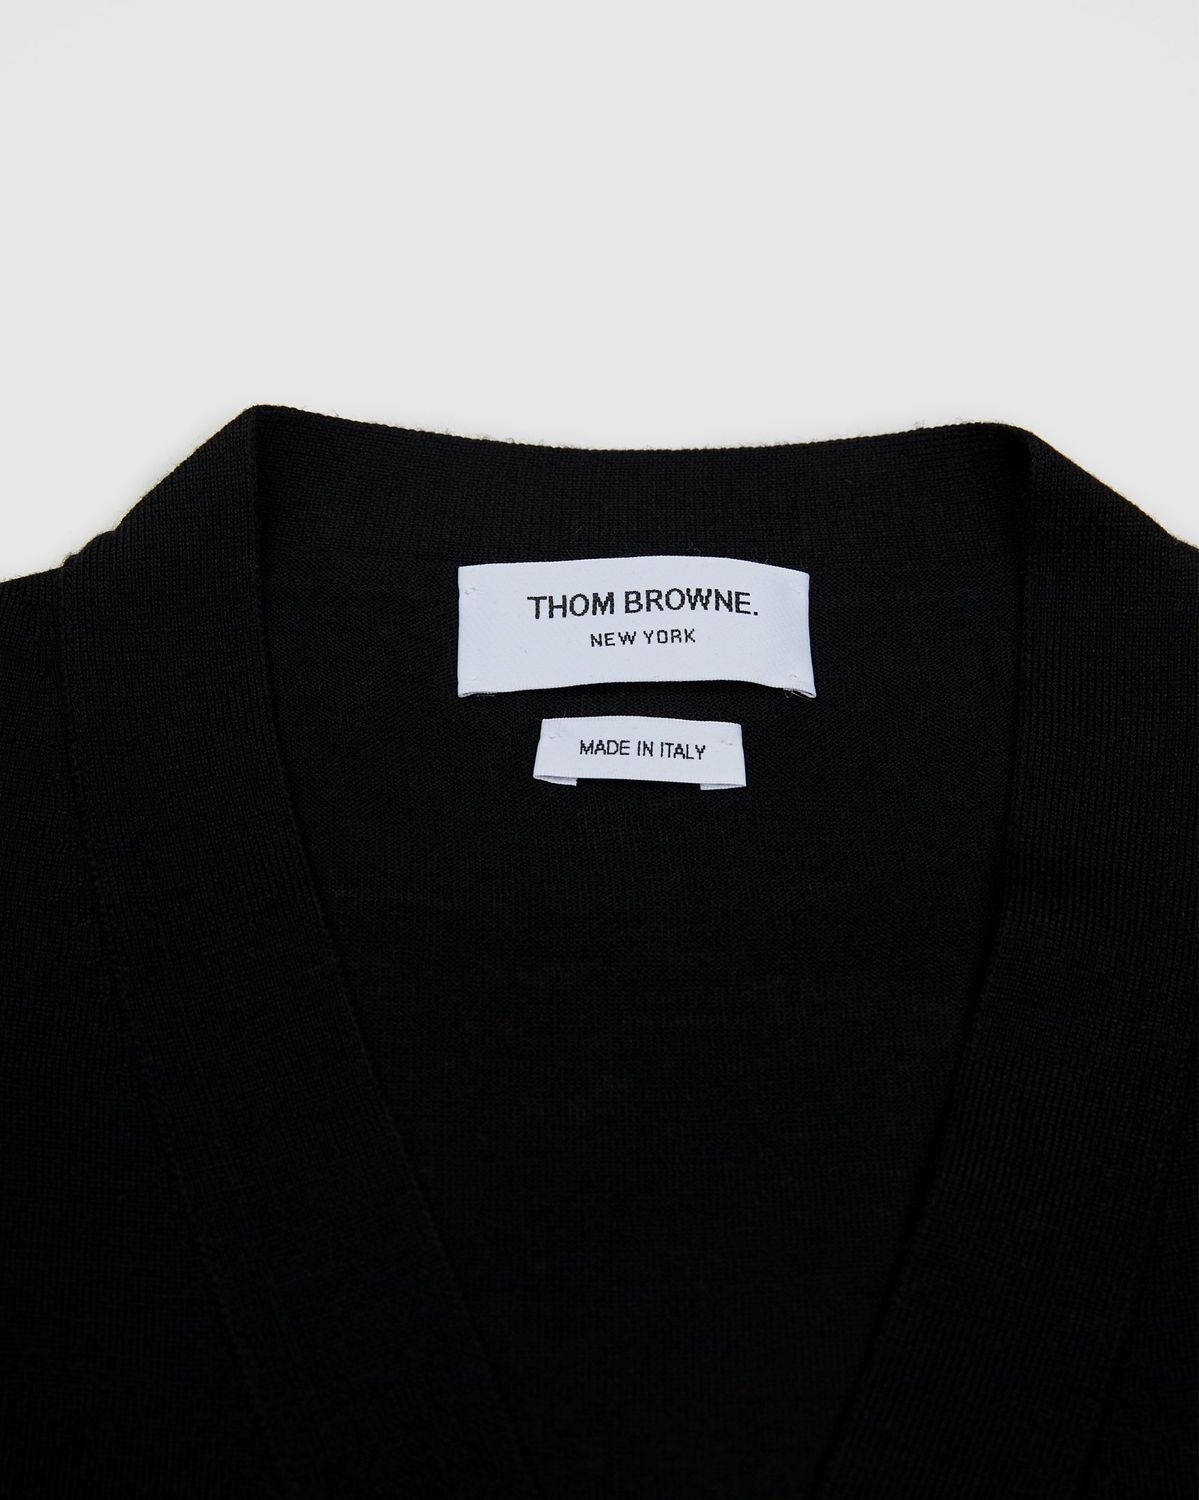 Colette Mon Amour x Thom Browne — Black Star Cardigan - Image 3